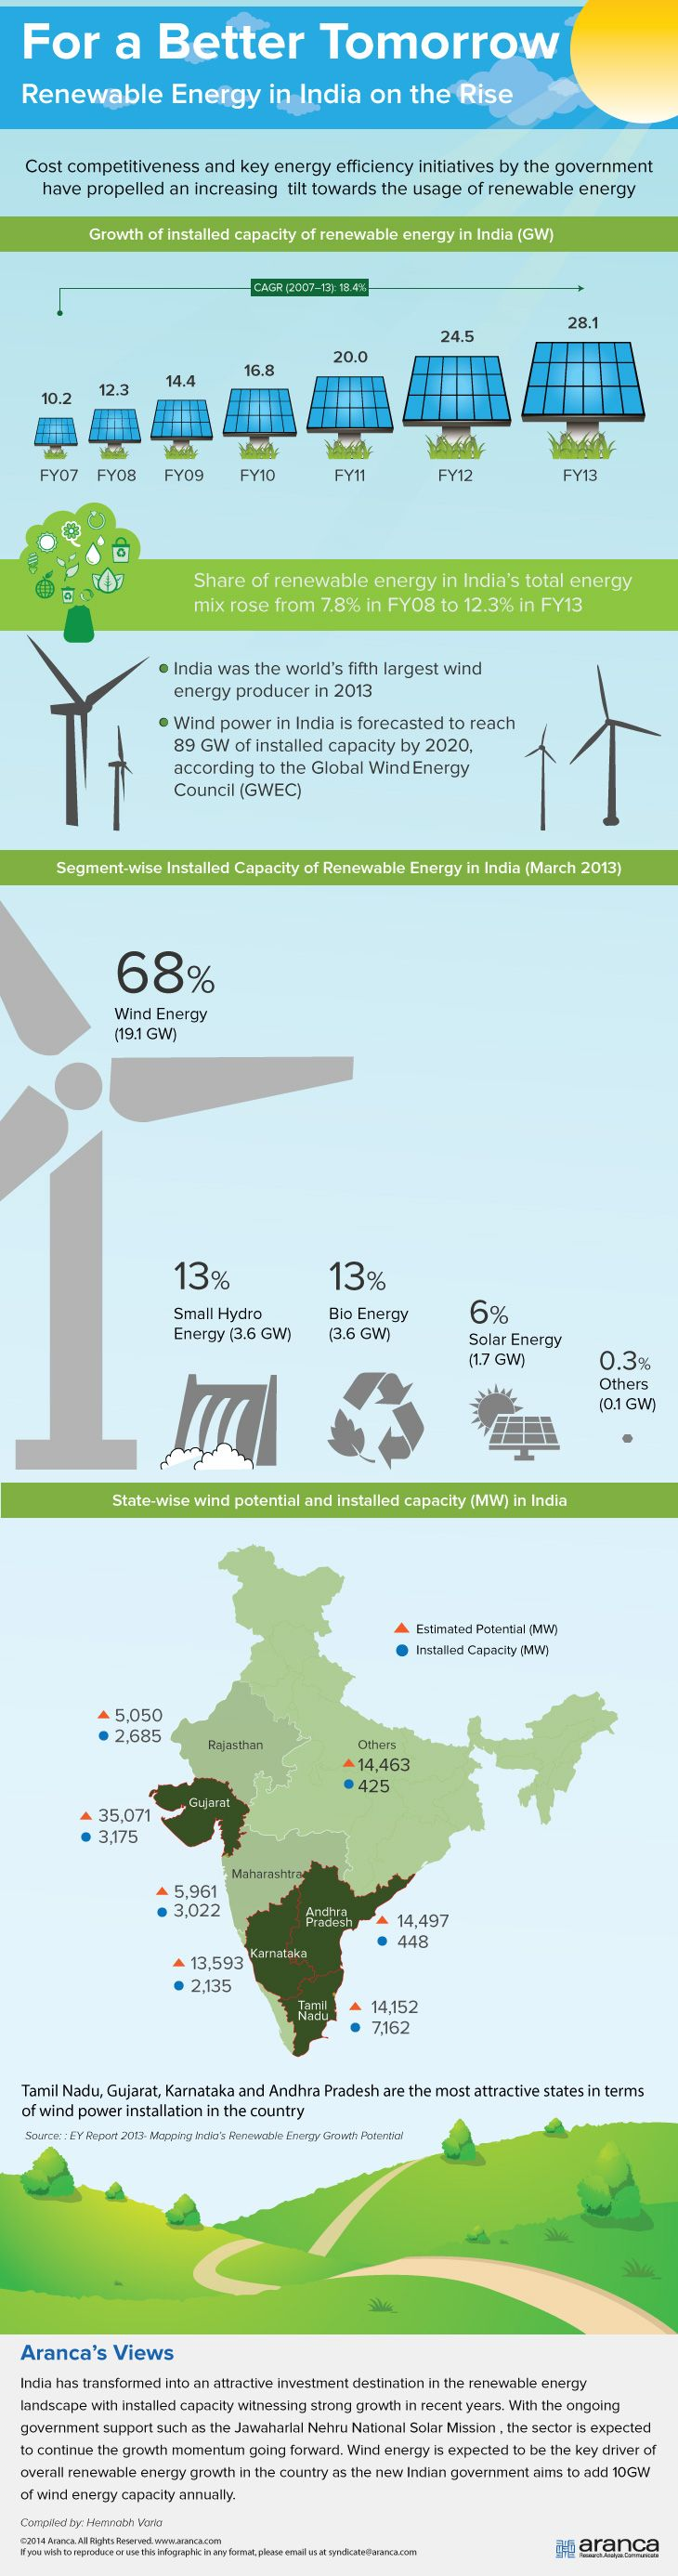 India is expected to continue the growth momentum in the usage of renewable energy with wind energy taking the lead. Check out the infographic to know growth aspects of renewable energy in India.